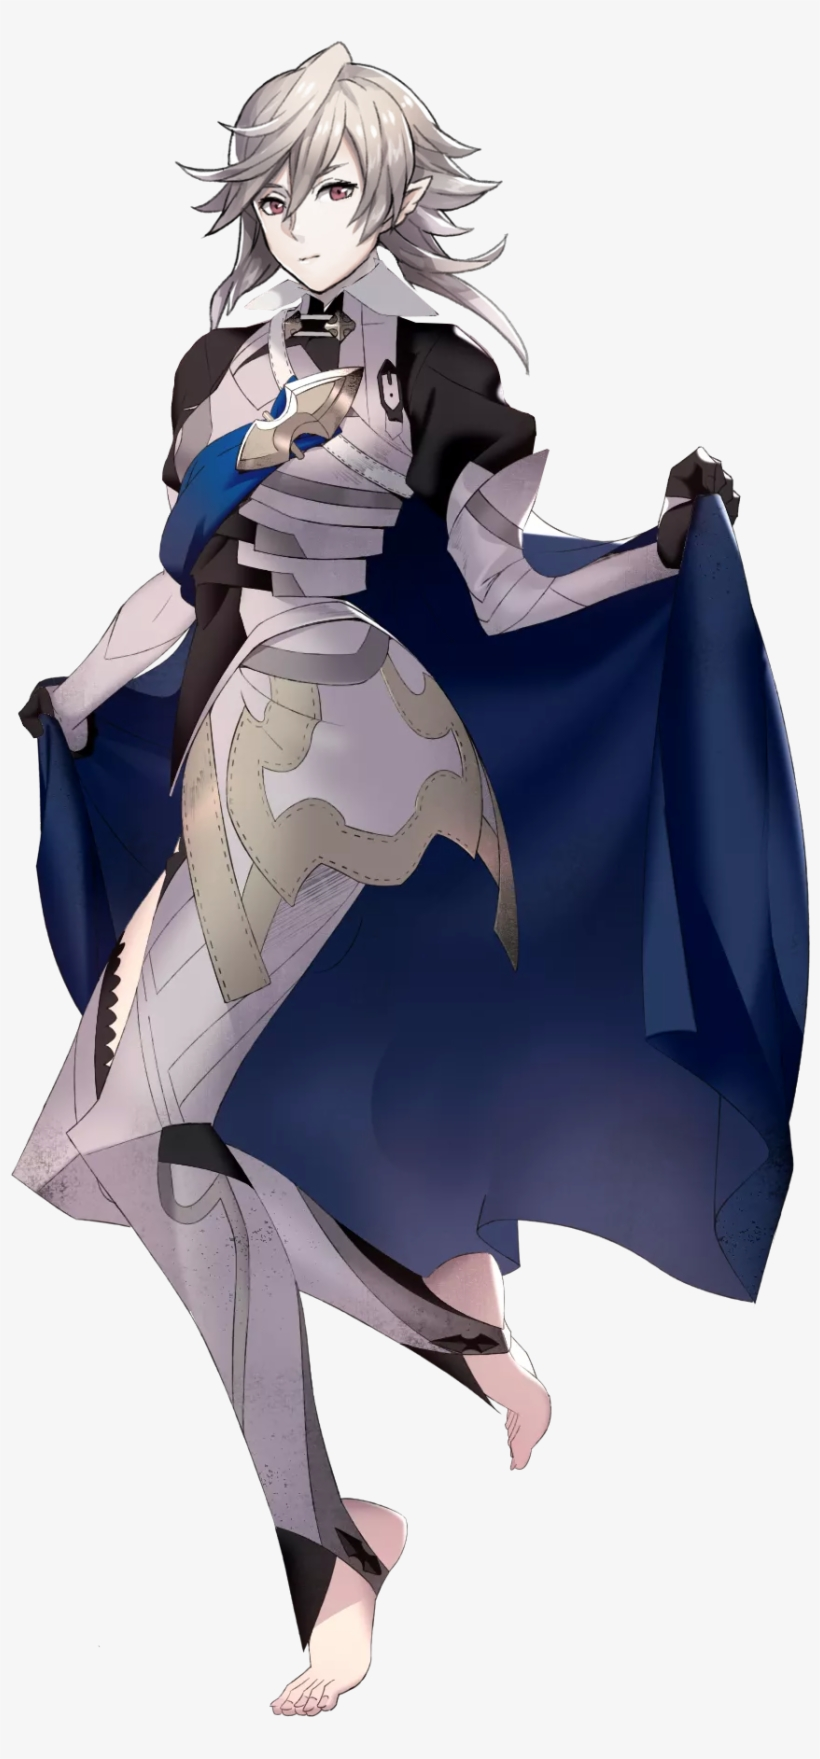 Doing Their Bestmale Corrin Fire Emblem Corrin Heroes Transparent Png 1600x1920 Free Download On Nicepng Zerochan has 201 hoshi ryouma anime images, wallpapers, fanart, cosplay pictures, and many more in its gallery. nicepng